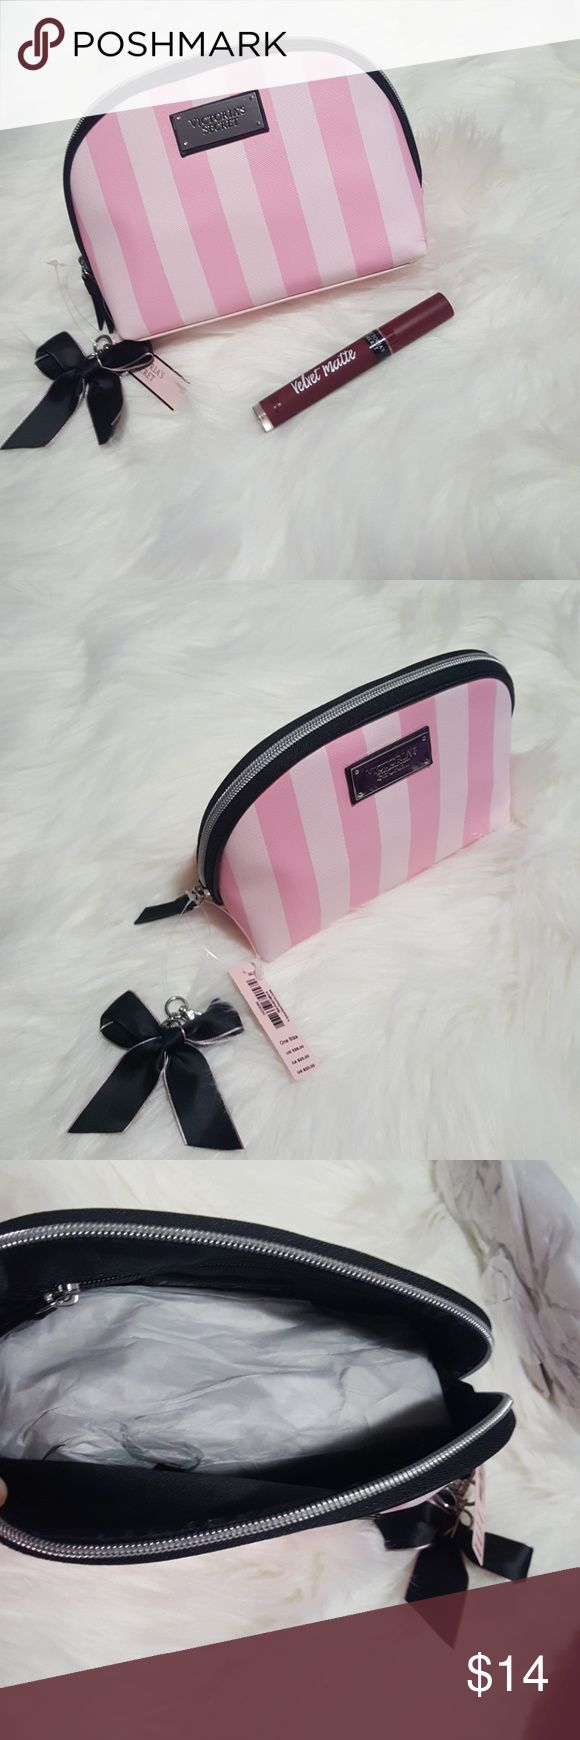 New Victoria's Secret Make-Up Bag NEW Victoria's Secret Make-Up Bag in Signature  VS print - Never used (tags attached) with satin black bow perfect for a gift  (Velvet Matte Lip Creme Stain not included, but is listed in my closet, see separate listing). Victoria's Secret Accessories